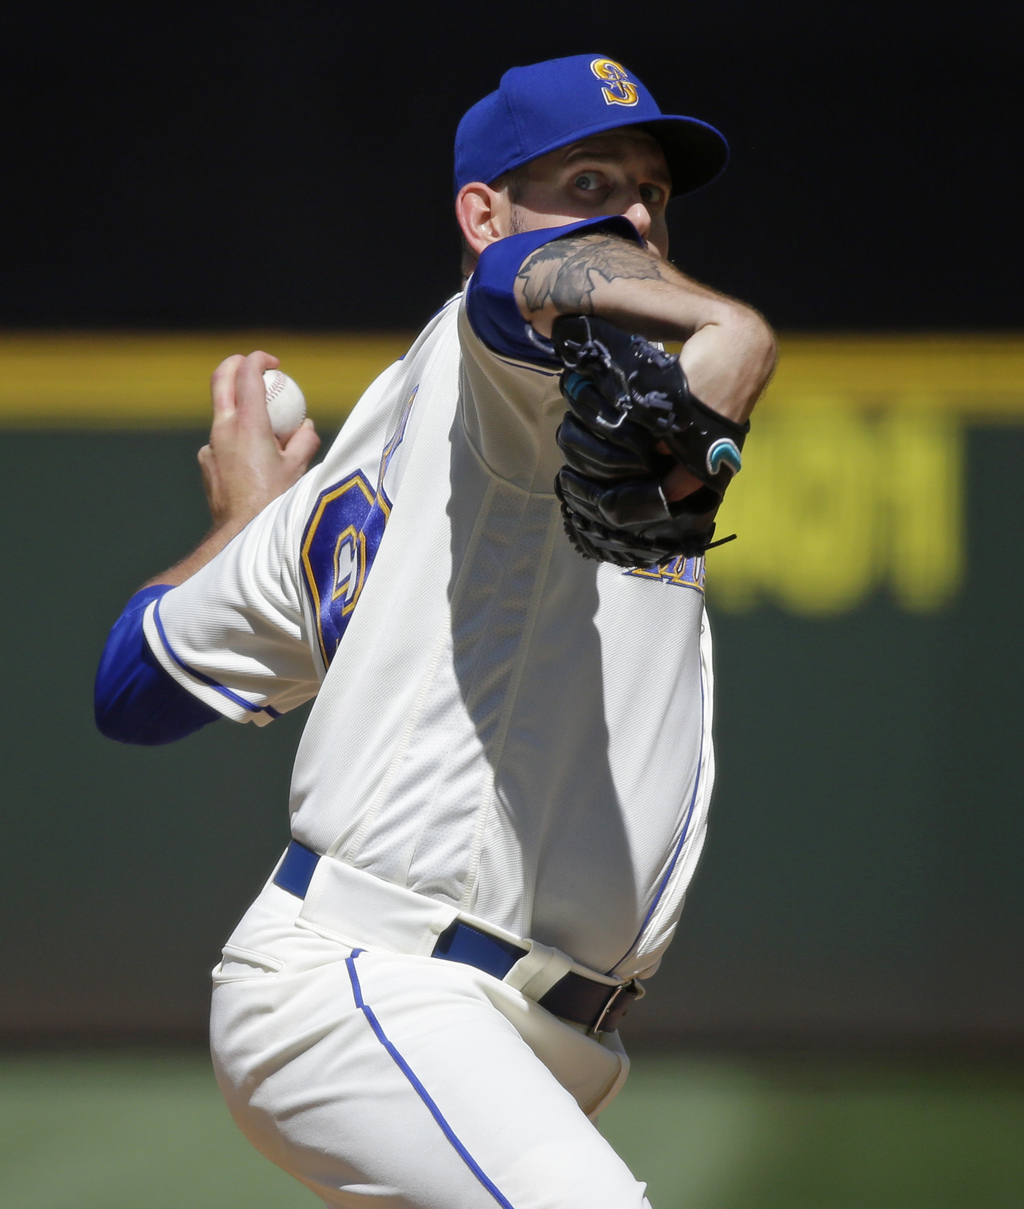 Seattle Mariners starting pitcher James Paxton throws against the New York Mets in the sixth inning of a baseball game, Sunday, July 30, 2017, in Seat...